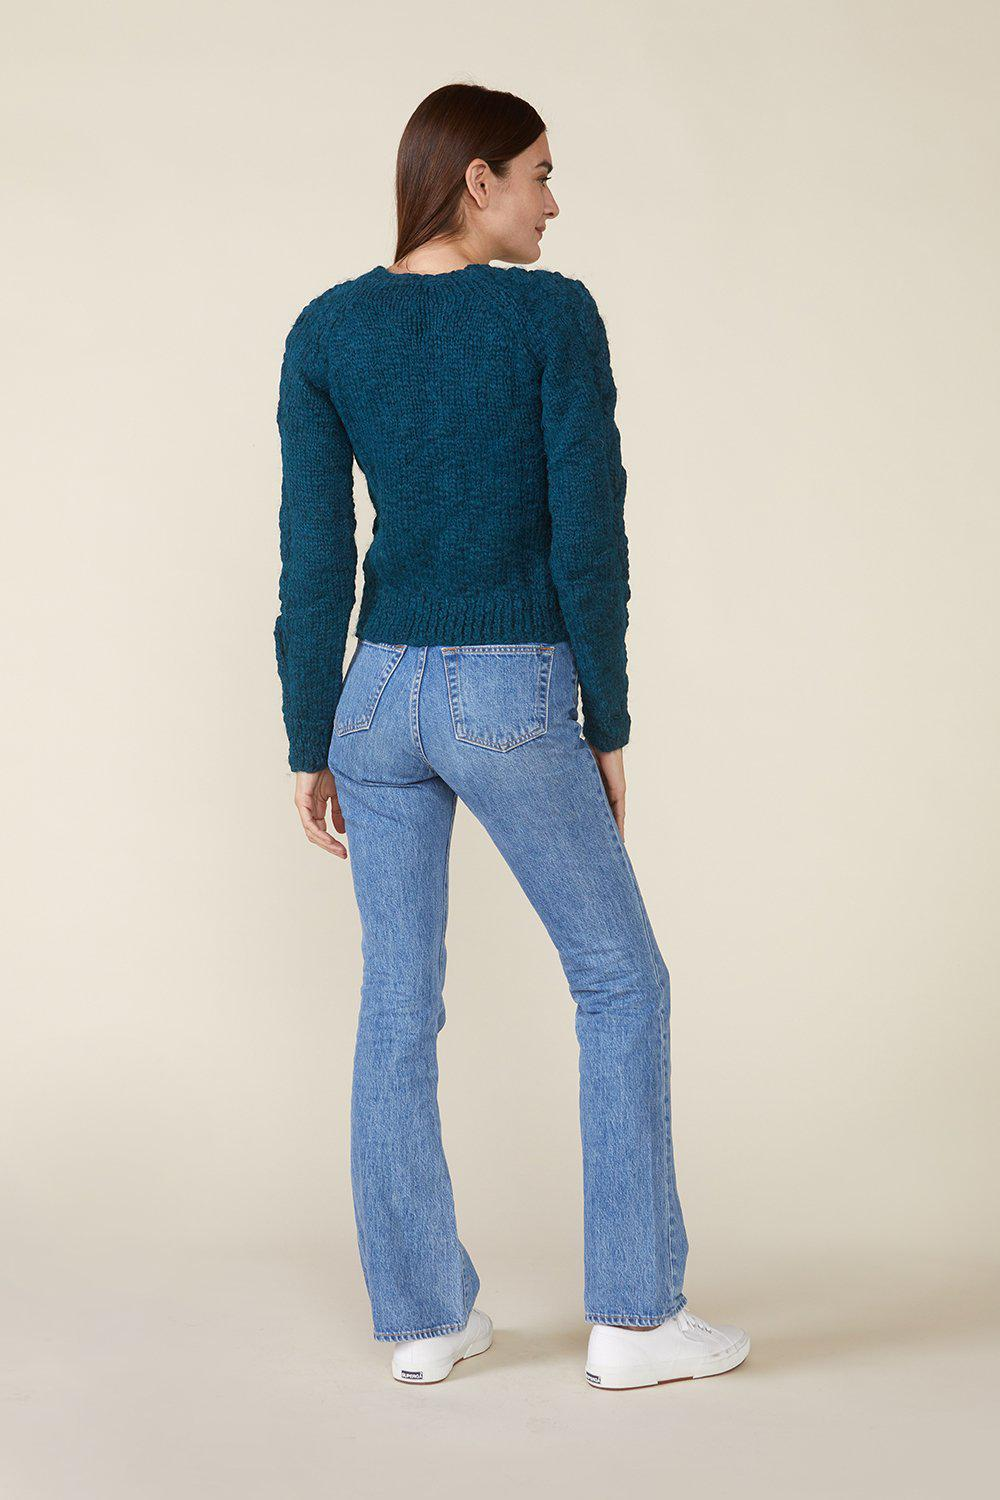 OSSIE SWEATER, TEAL 4